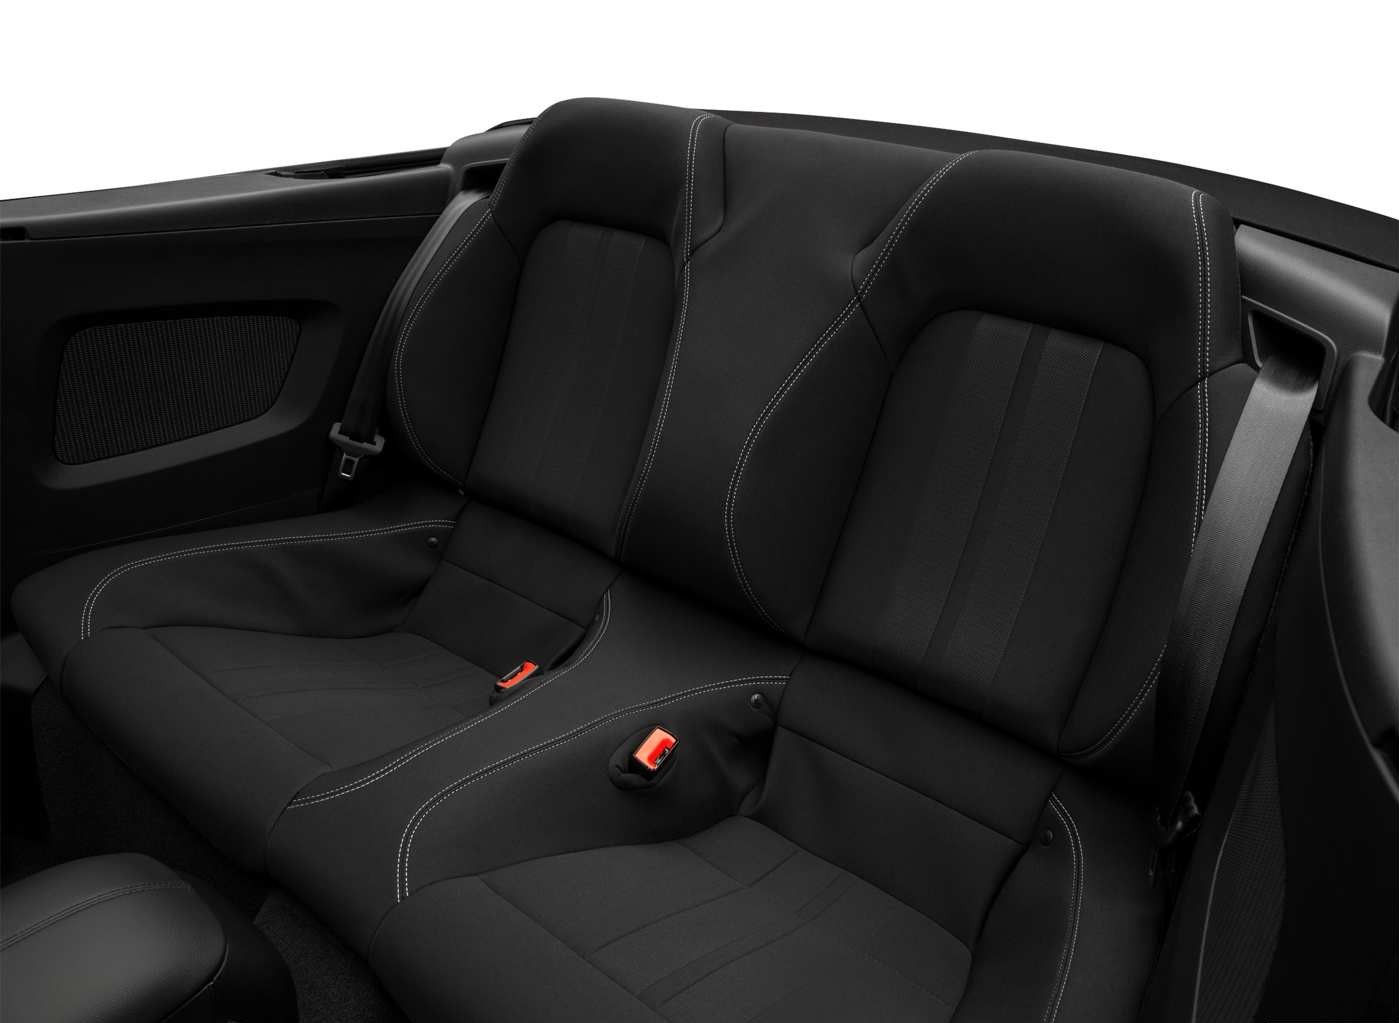 2020 Ford Mustang Ecoboost Rear Seats